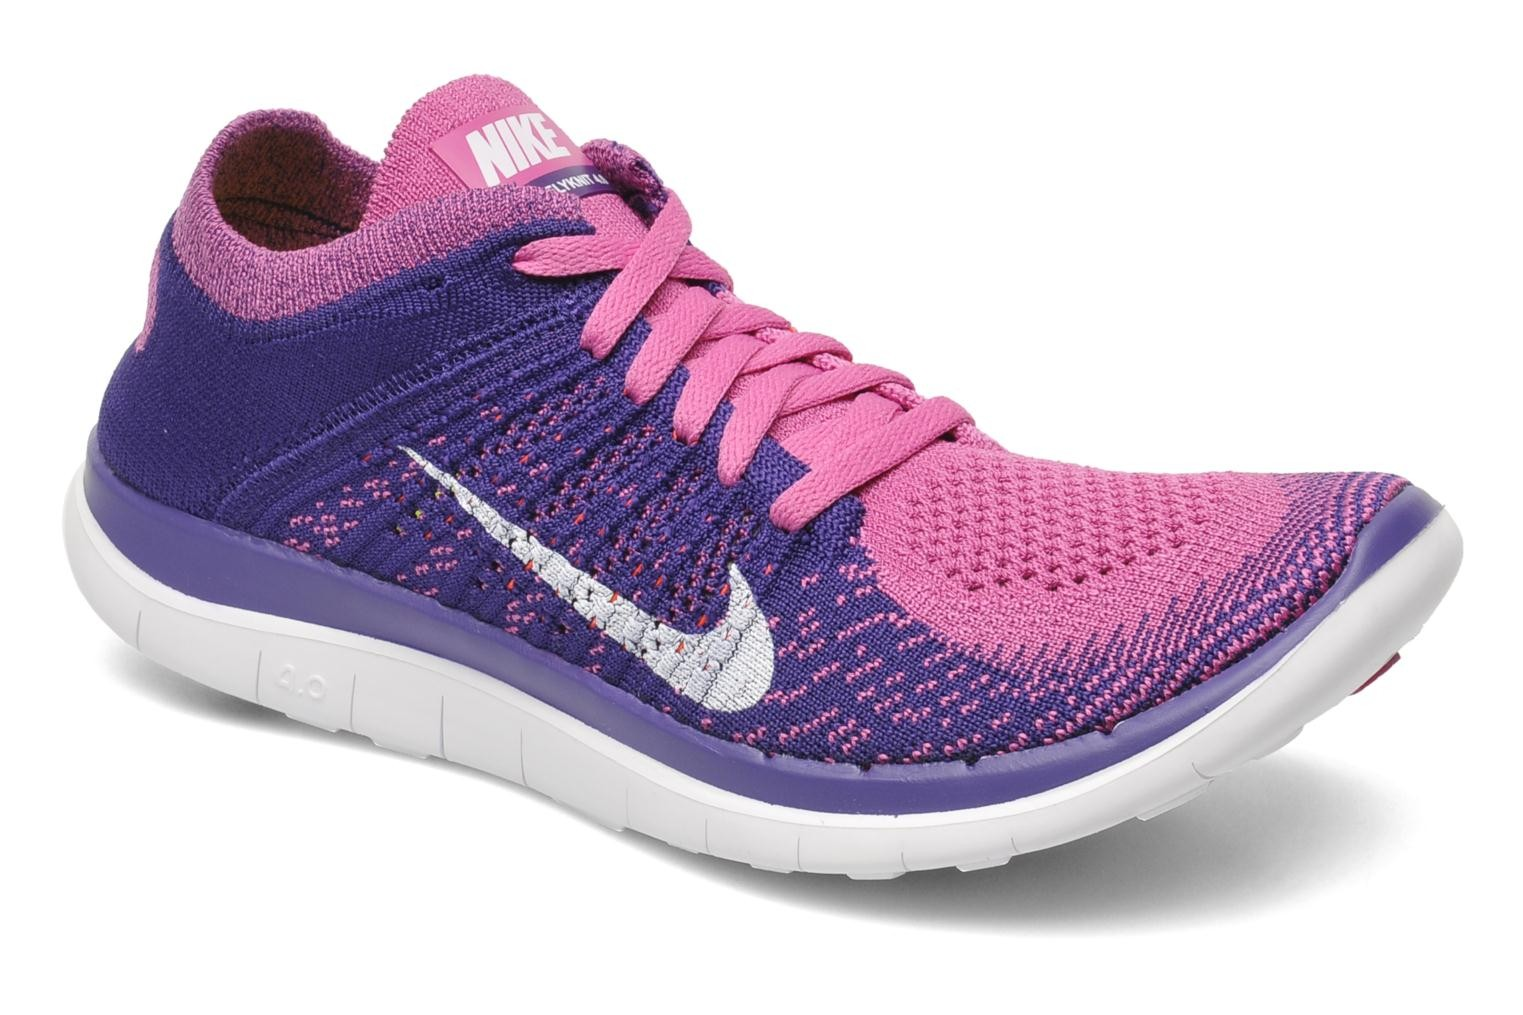 Nike WMNS Free 4.0 Flyknit 631050 615 Club Pink/White-Court Purple Women's Running Shoe